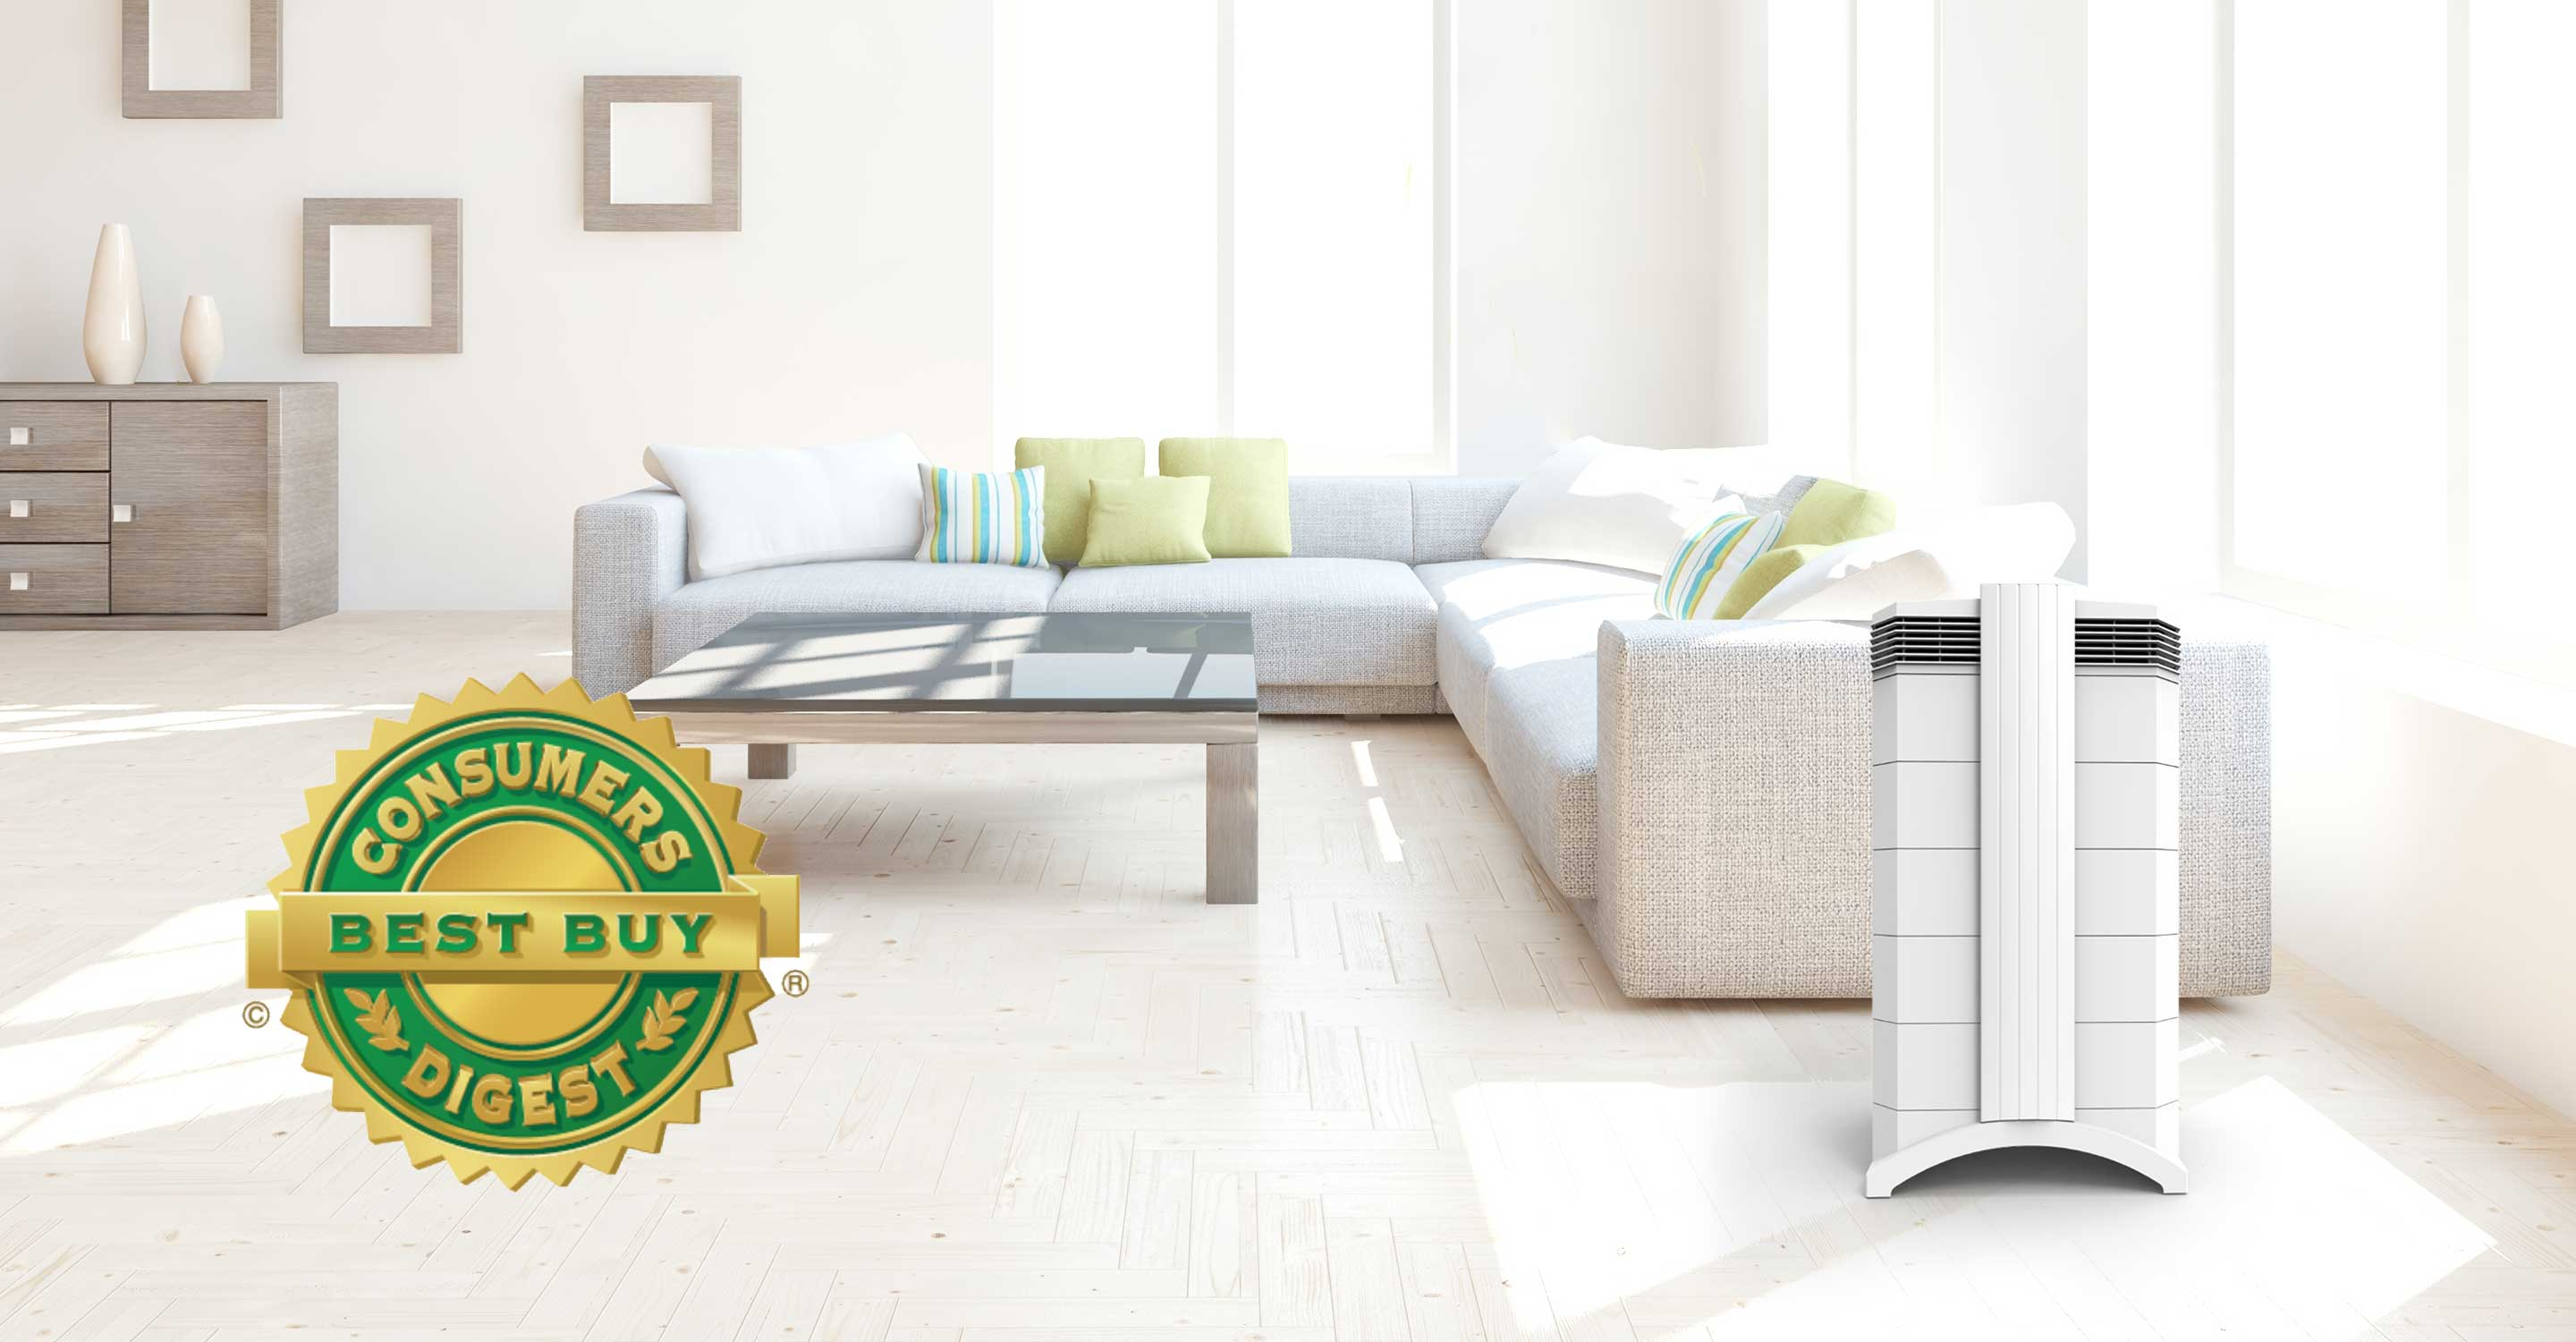 Image of house interior with Consumers Digest Best Buy logo.